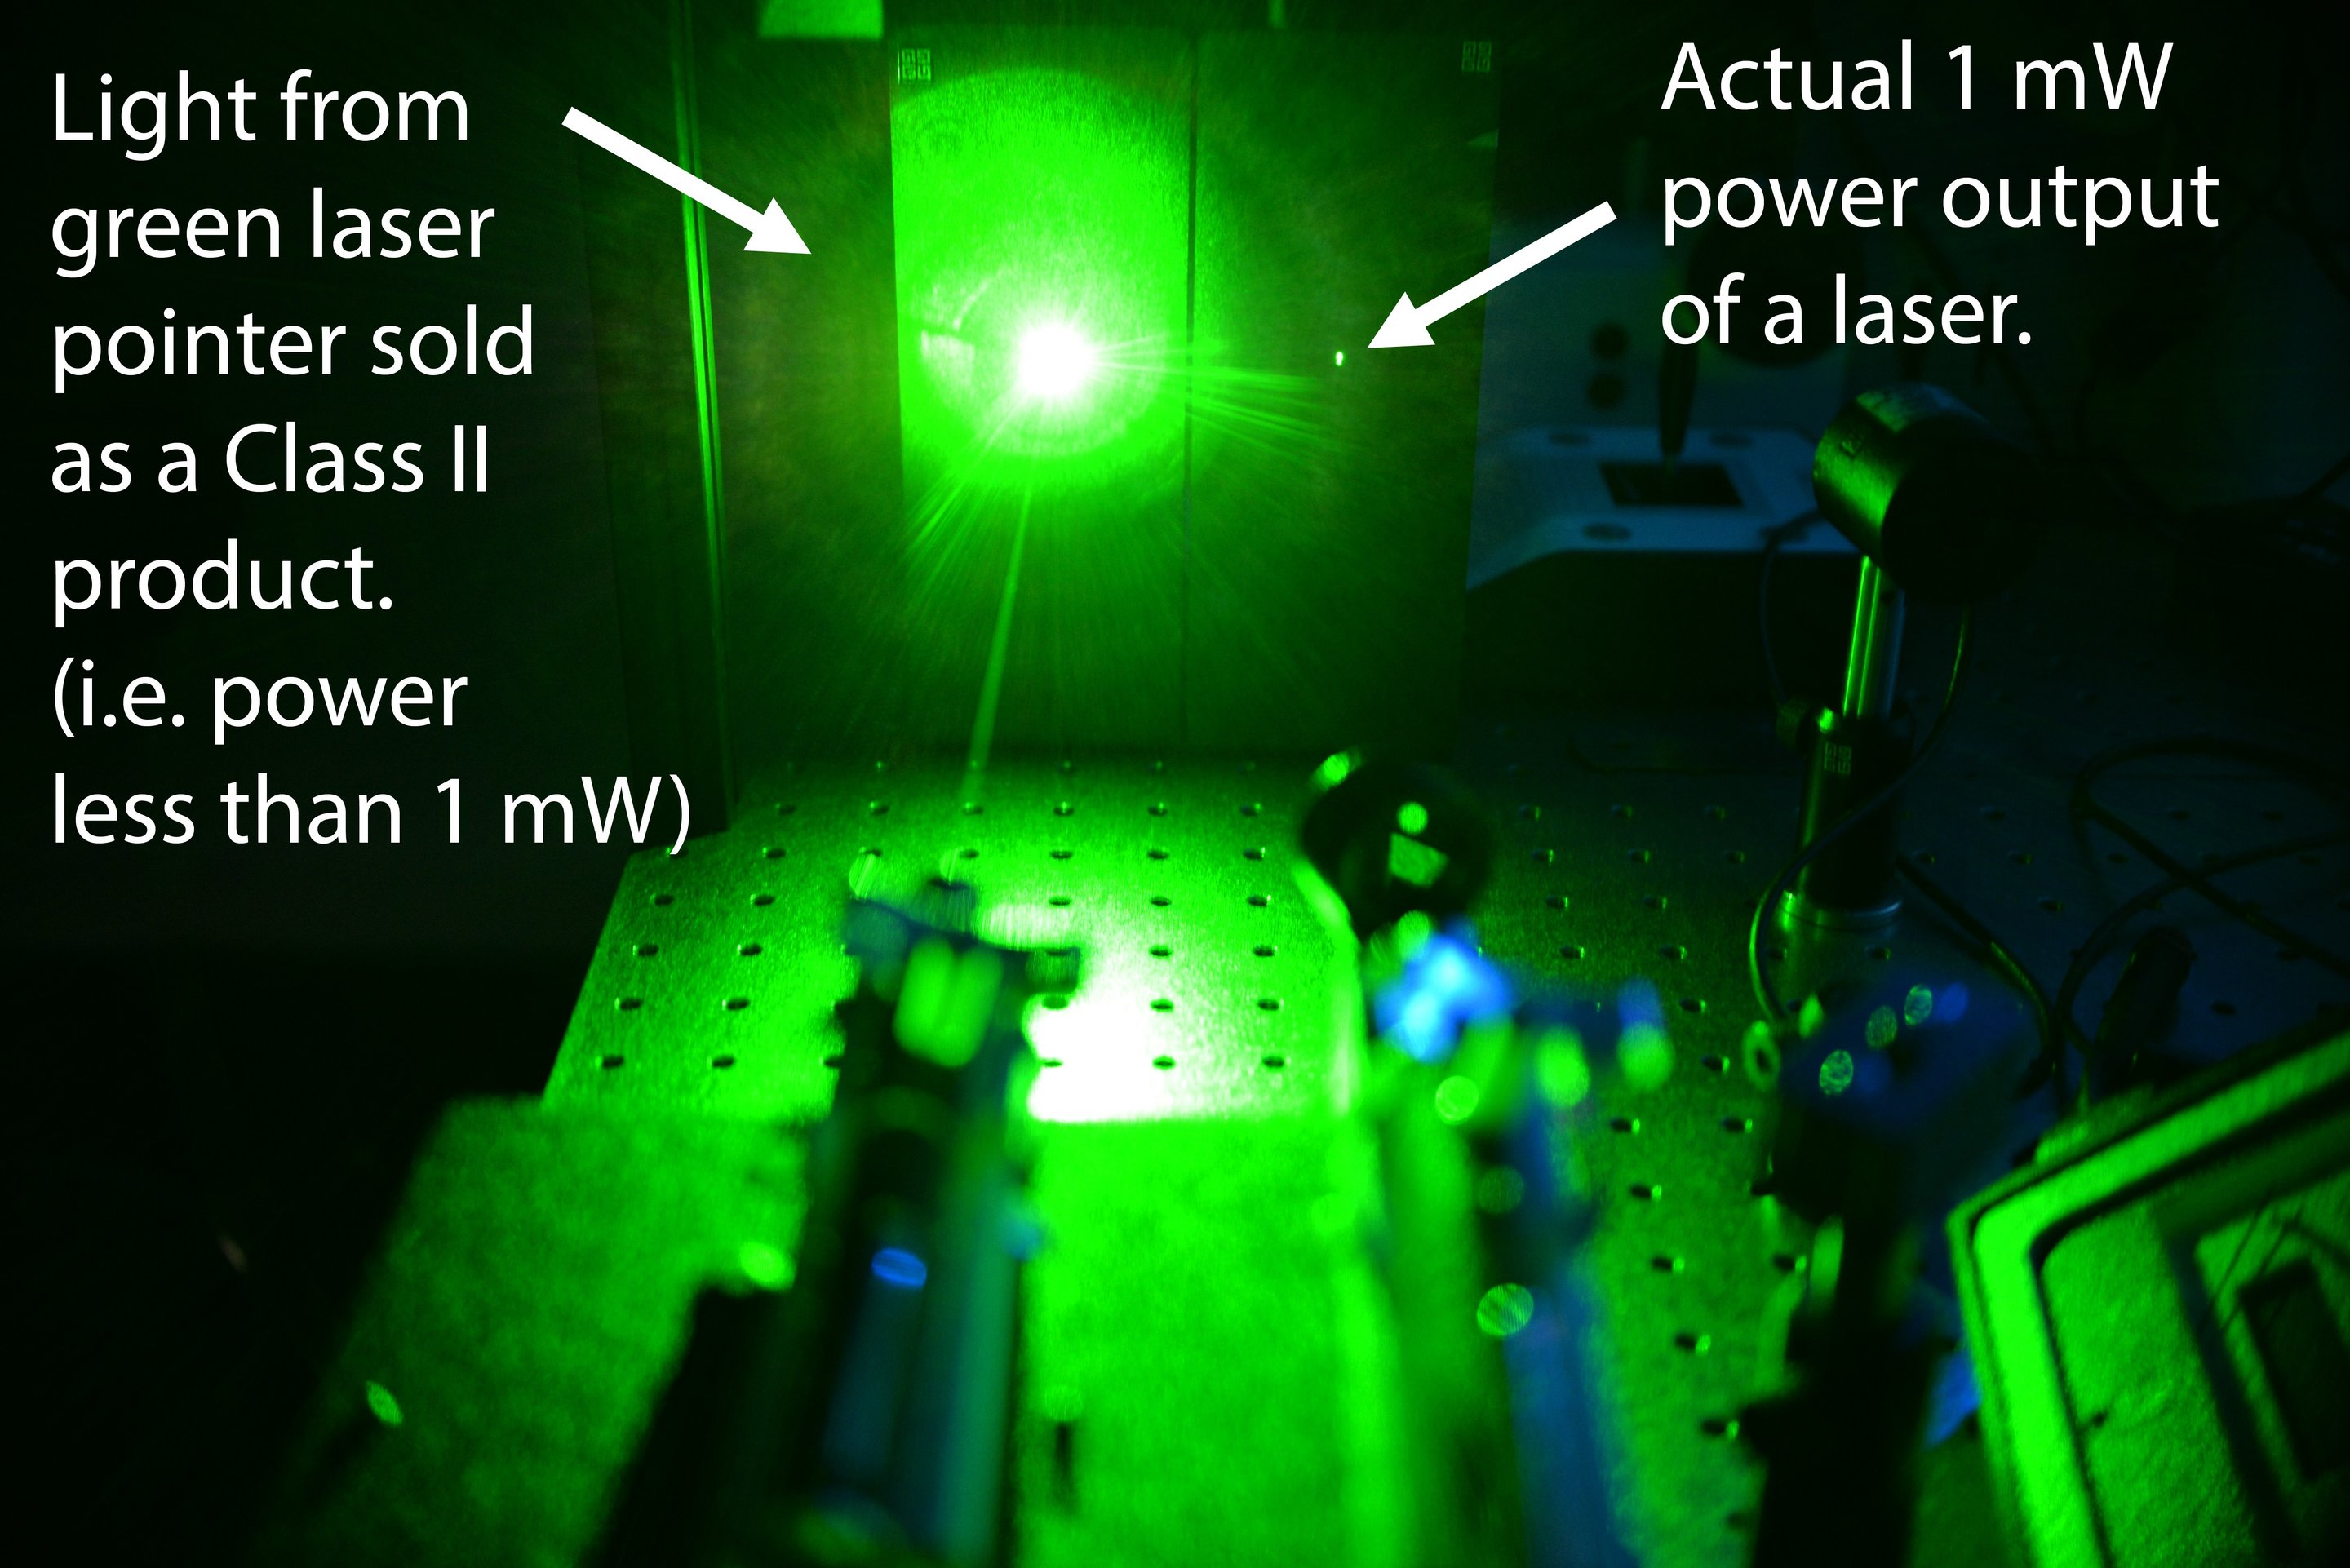 Public Unwittingly Buying Dangerous Laser Pointers, Warn Scientists